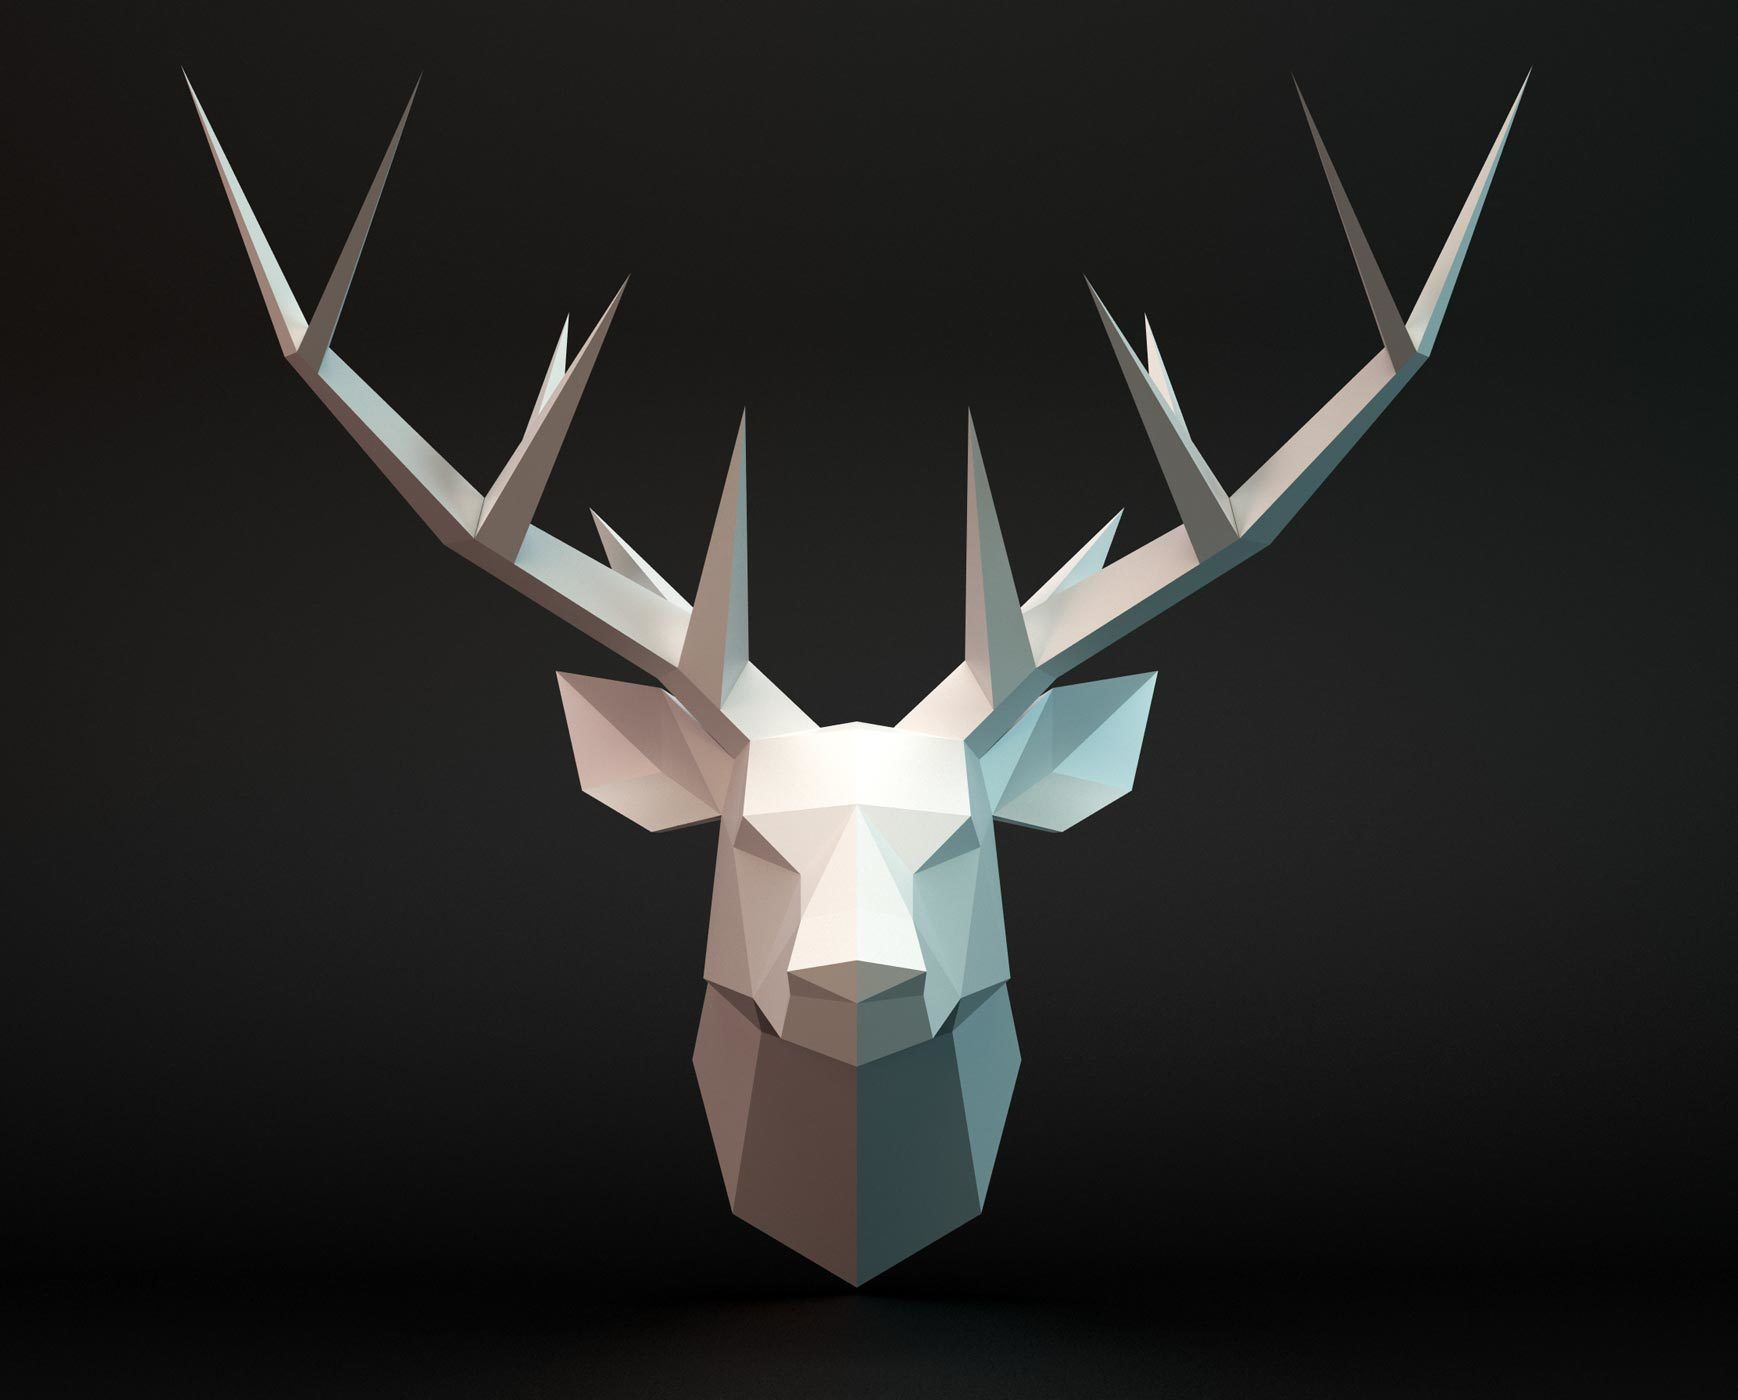 Deer Head 3d Model Geometric Deer Geometric Deer Head Steel Art